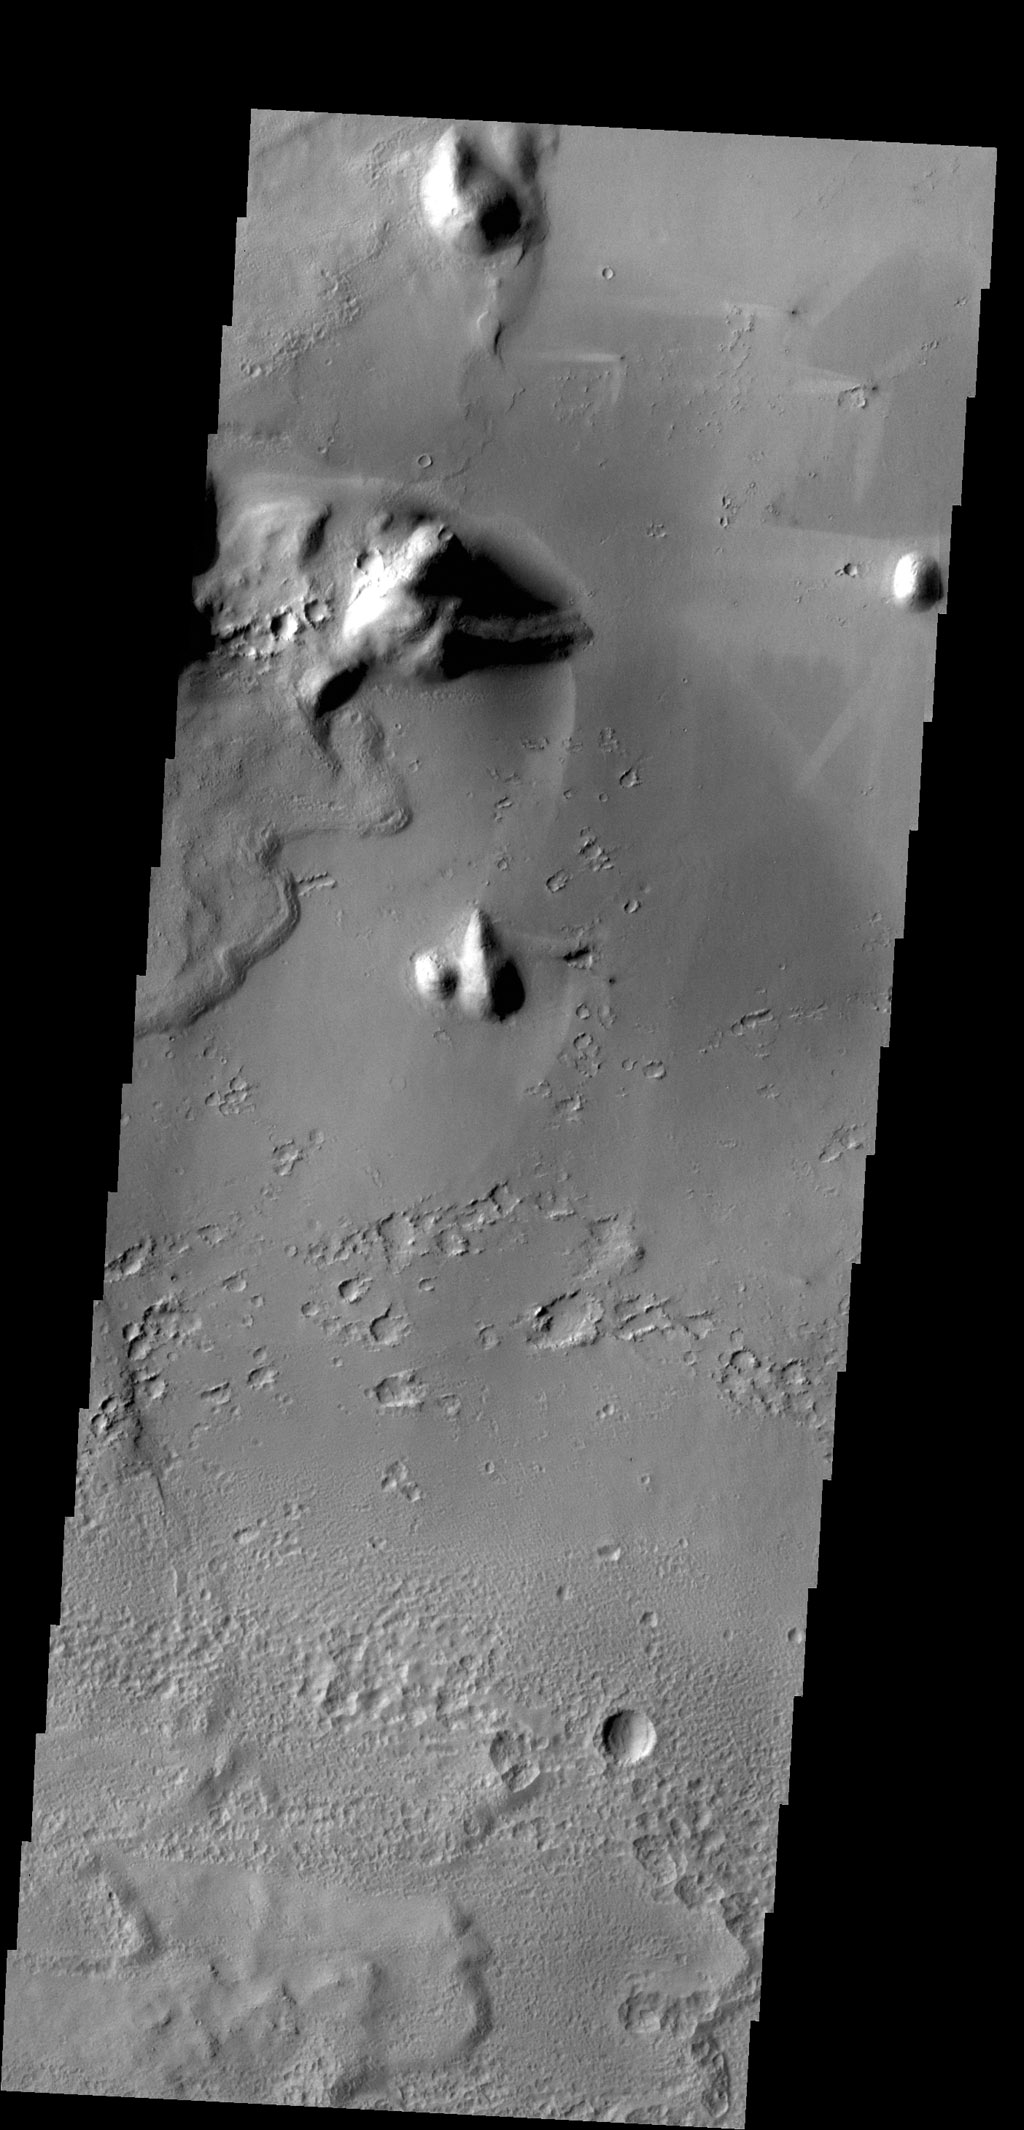 Bright windstreaks are located around several small craters at the top of this image captured by NASA's 2001 Mars Odyssey spacecraft.